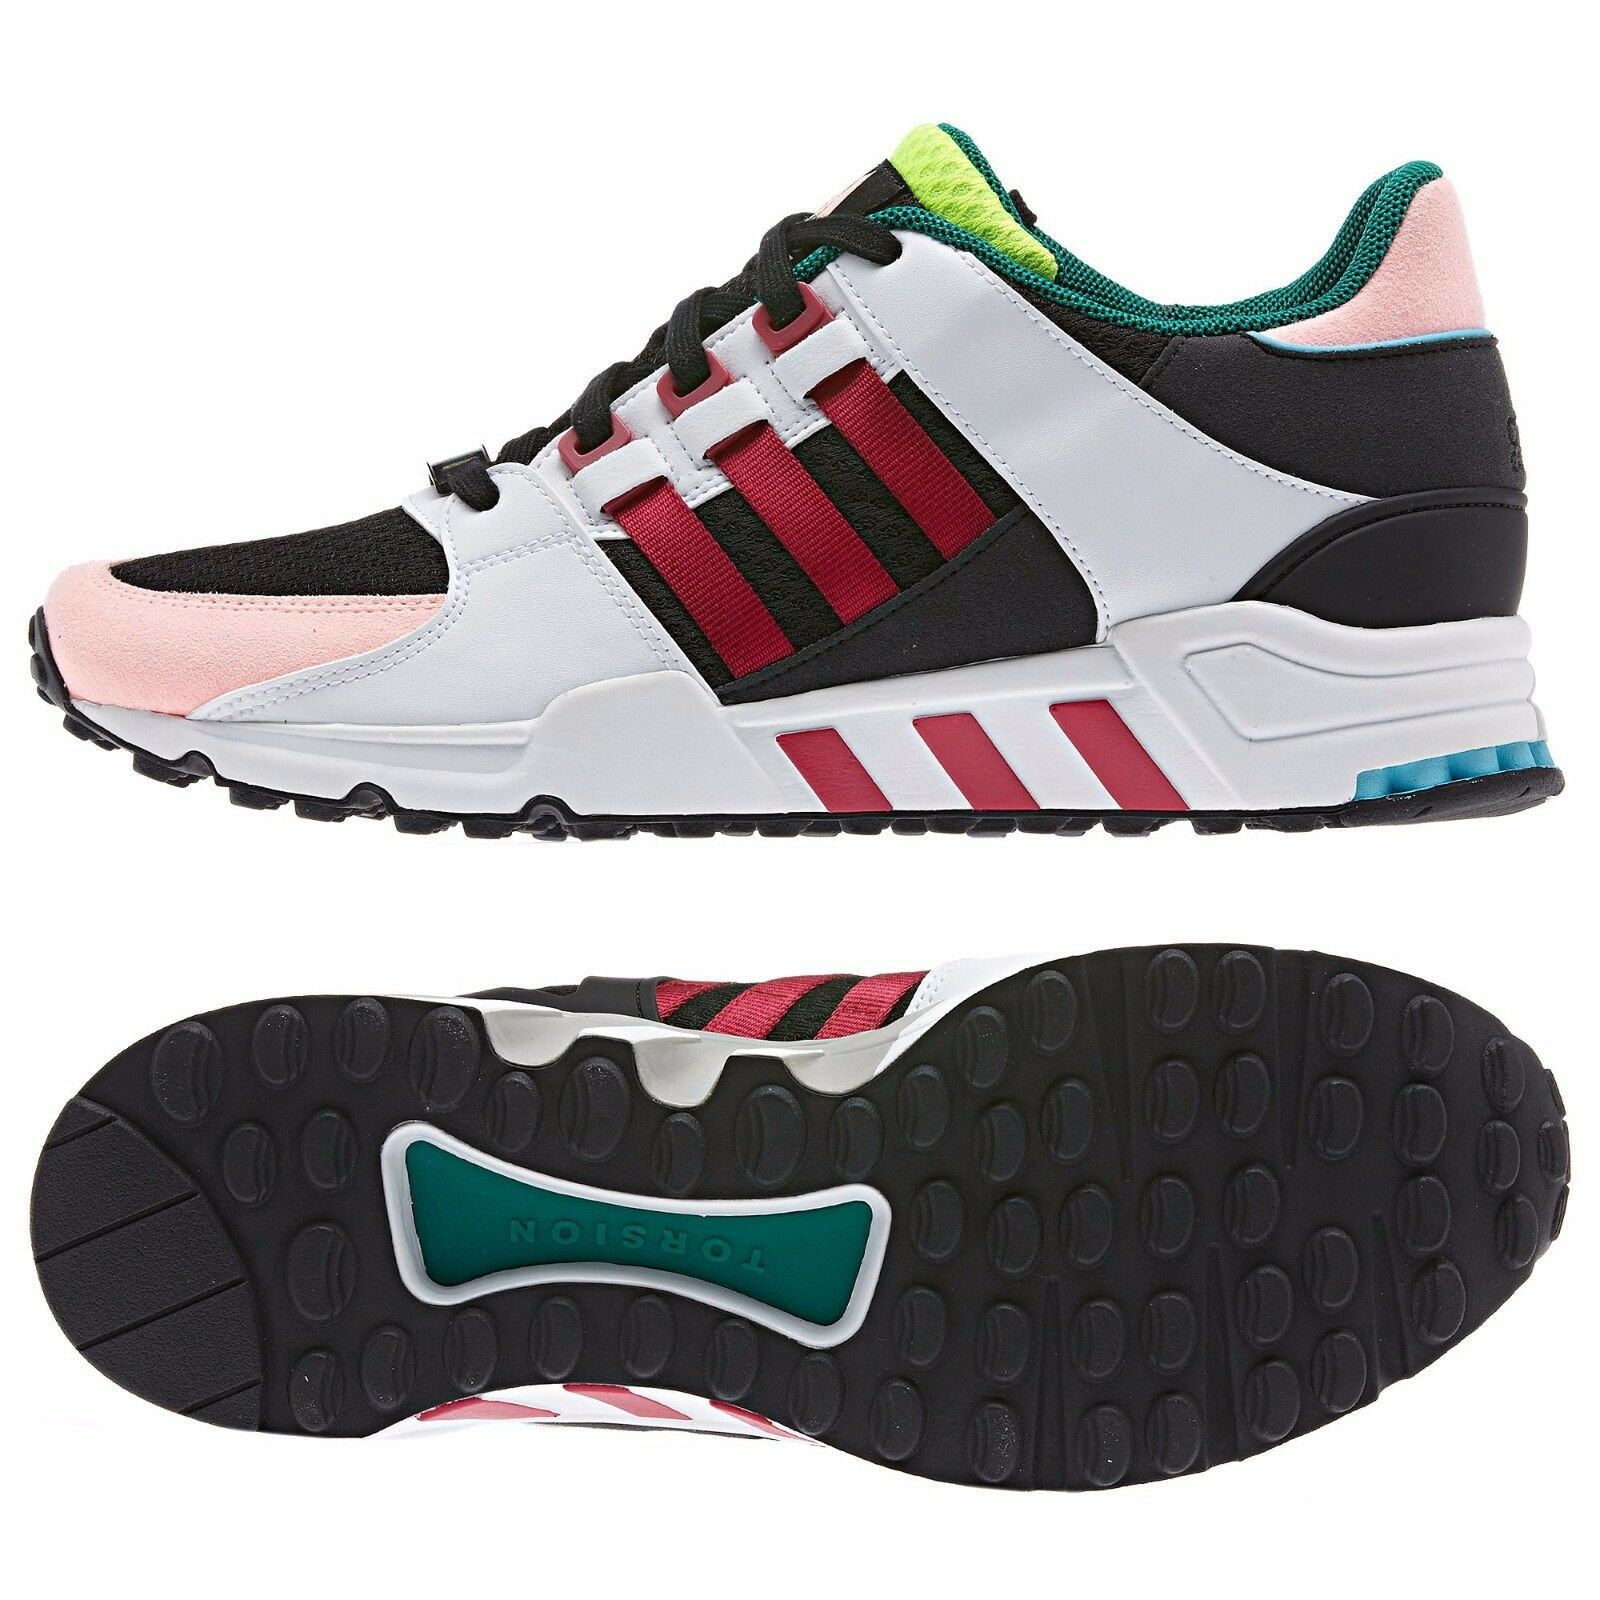 Adidas EQT '93 Equipment Running Support Oddity D67723 Black White Red Men shoes